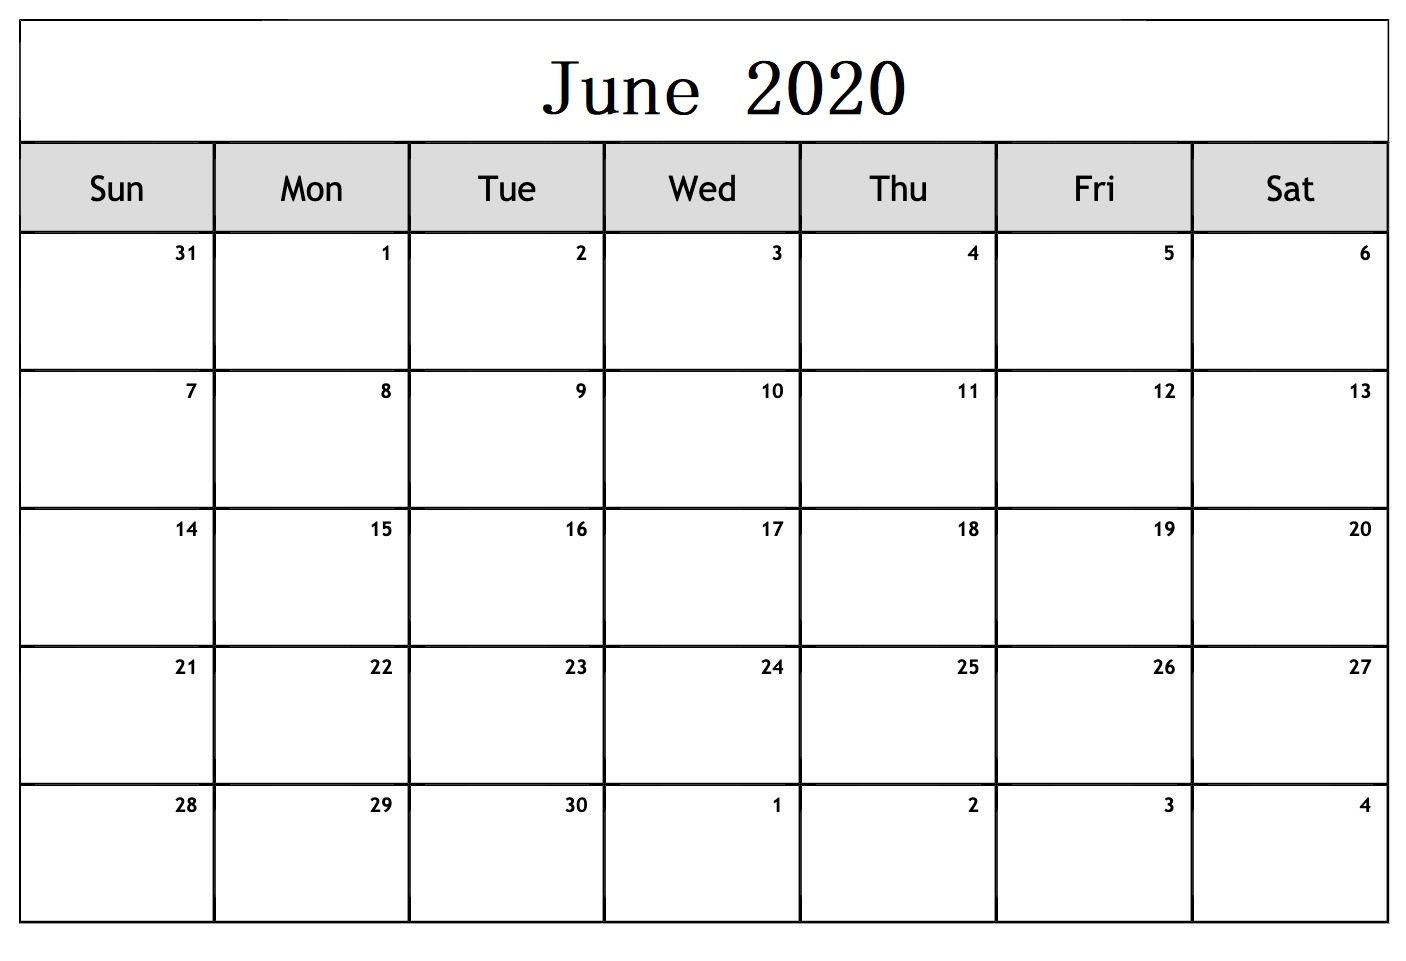 June 2020 Calendar In Word